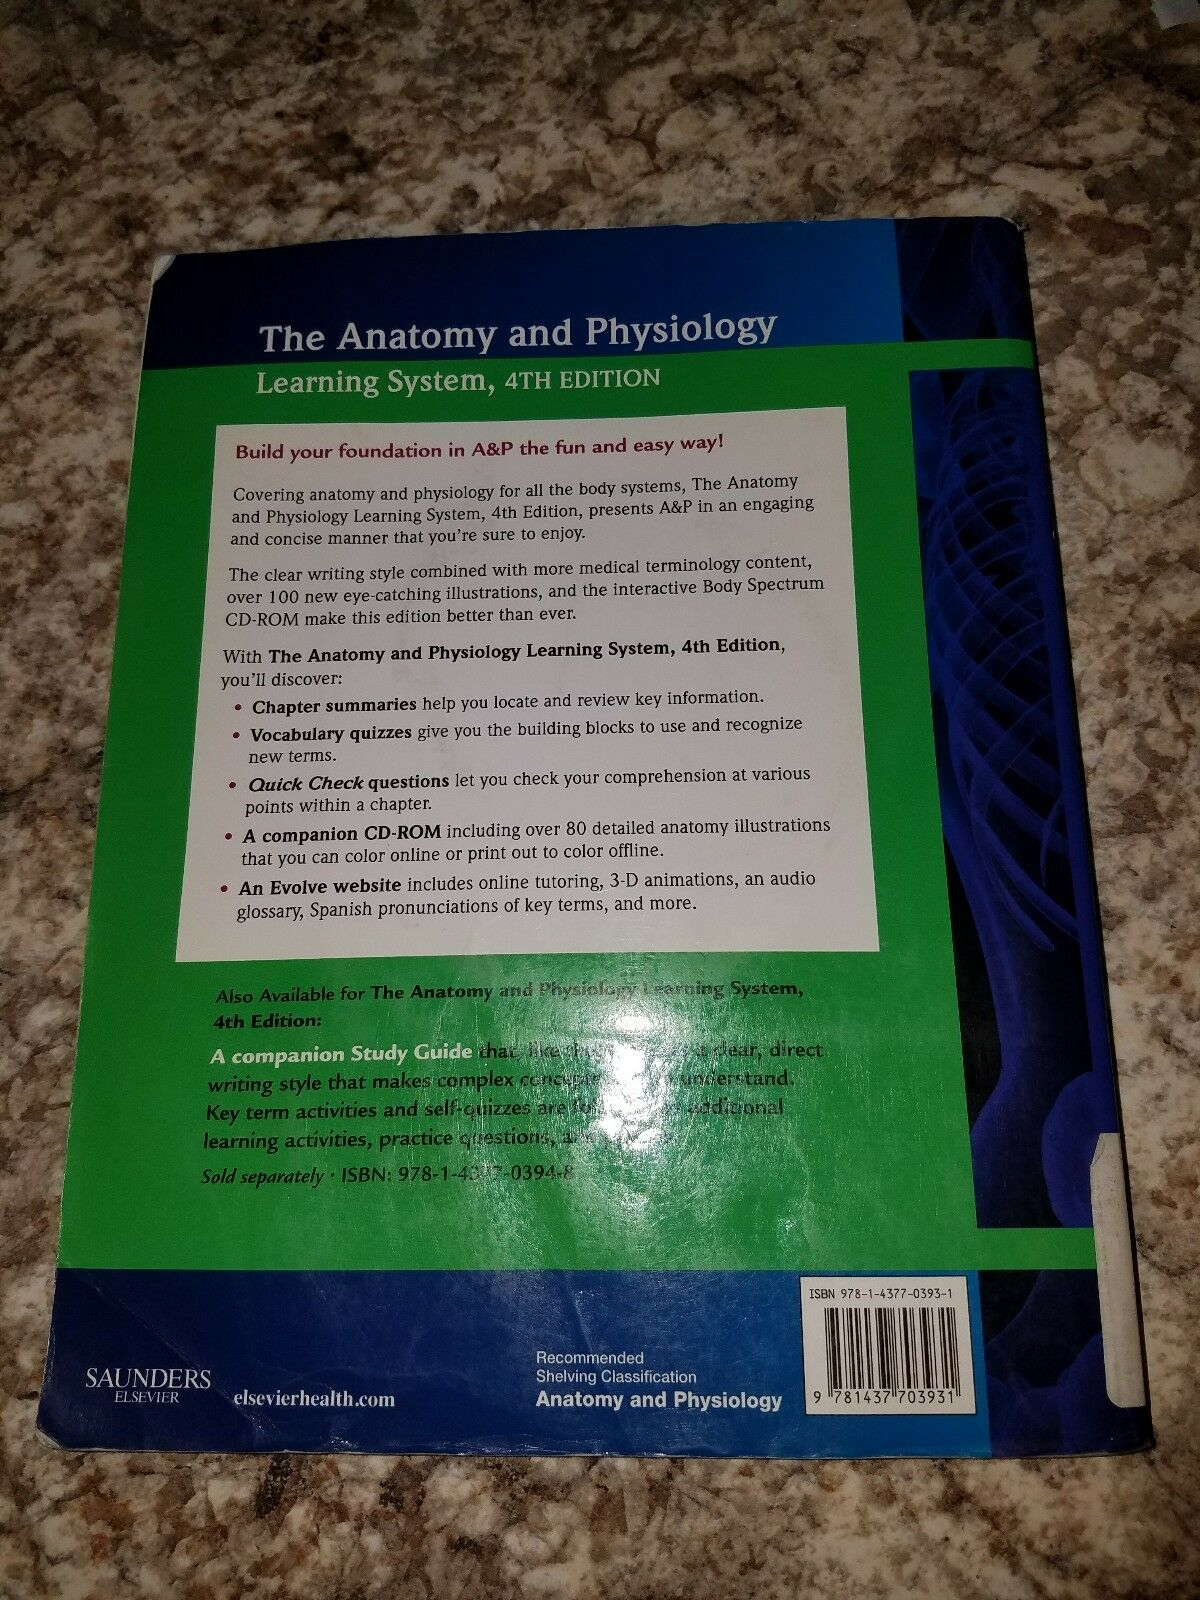 Schön Anatomy And Physiology Learning System 4th Edition Galerie ...